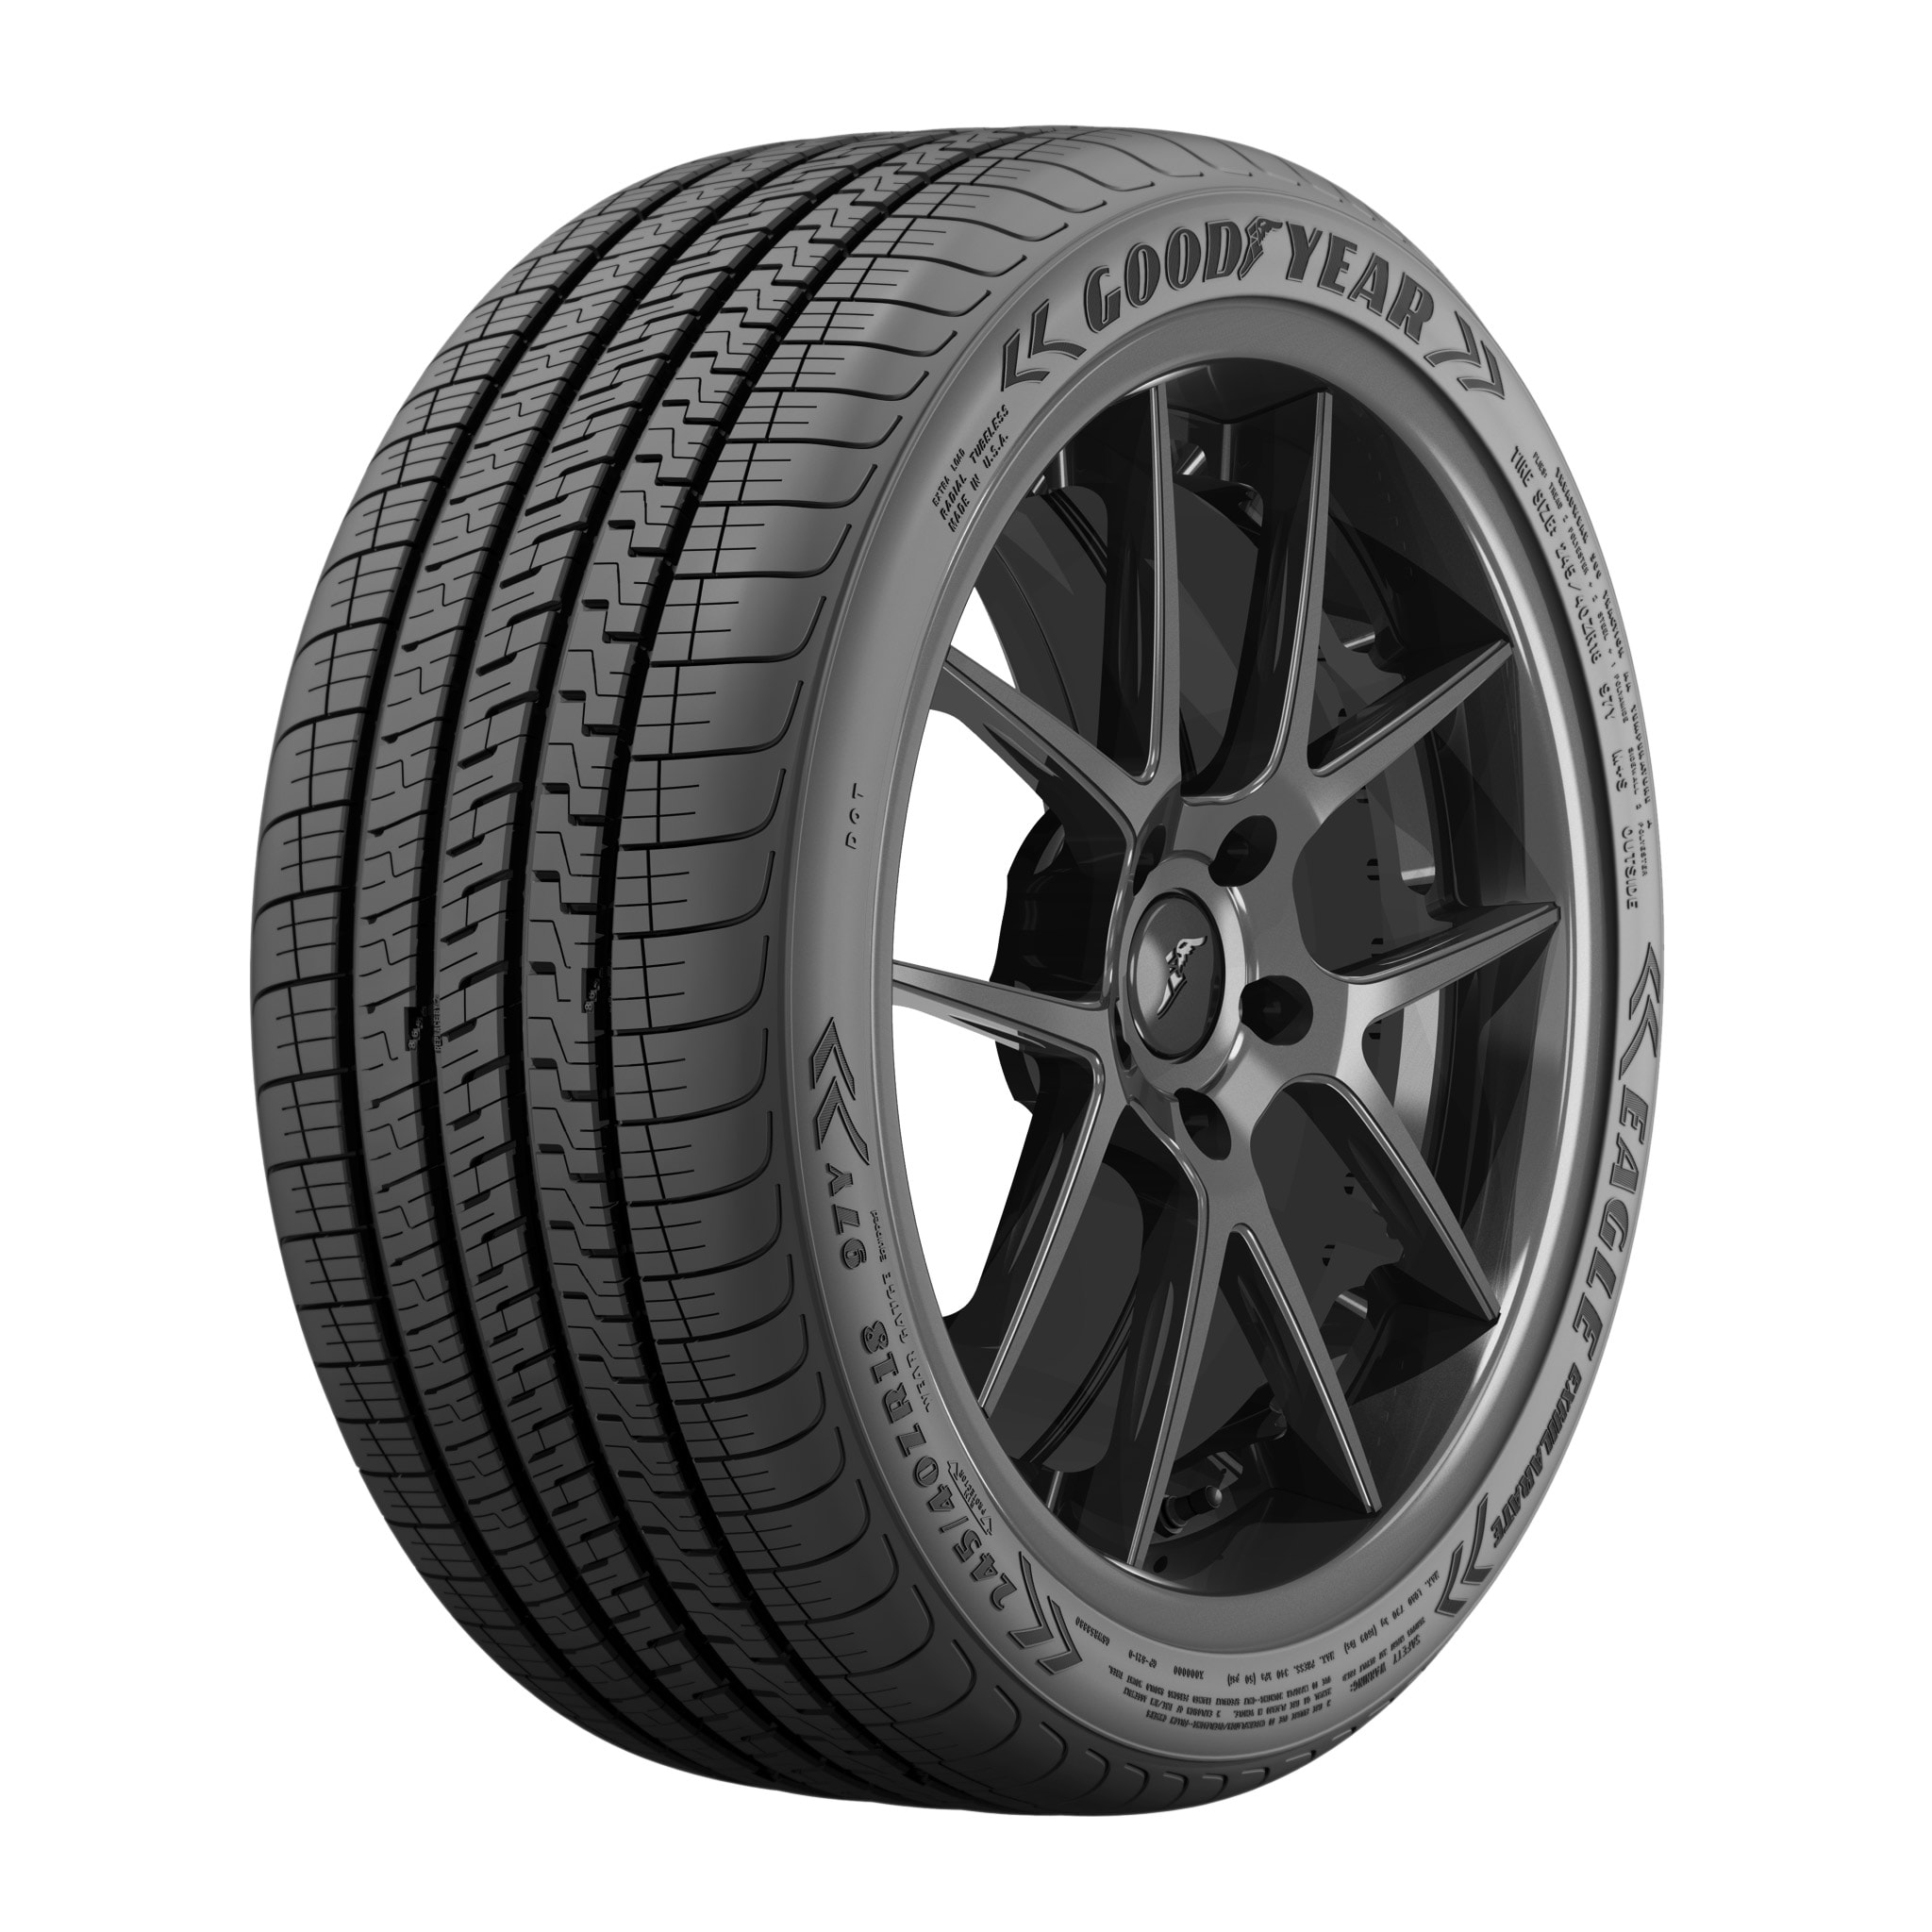 Angled view of the Goodyear Eagle Exhilarate tire